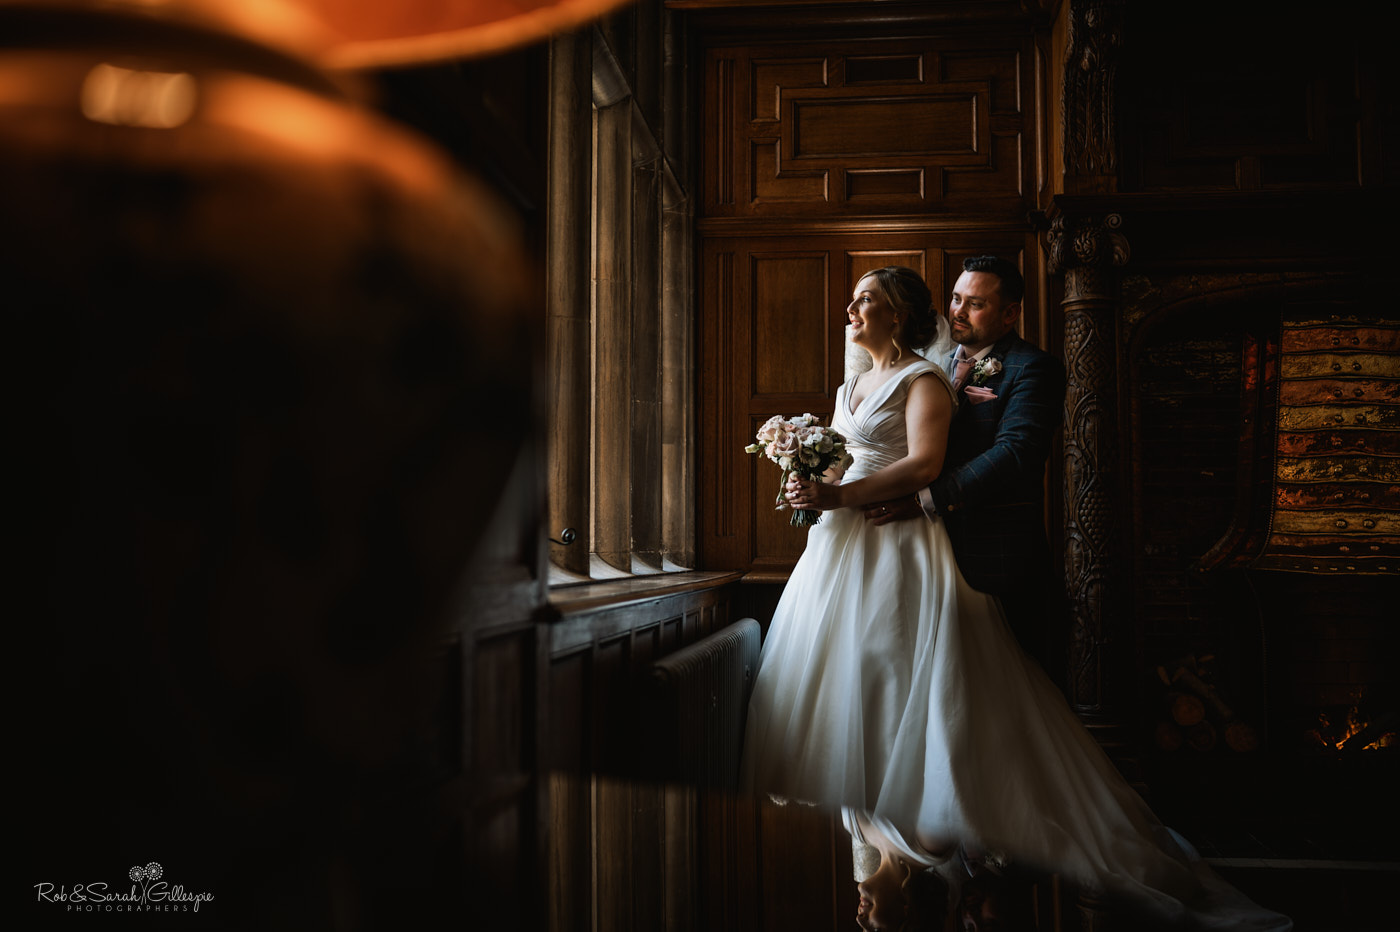 Bride and groom in beautiful window light at Pendrell Hall